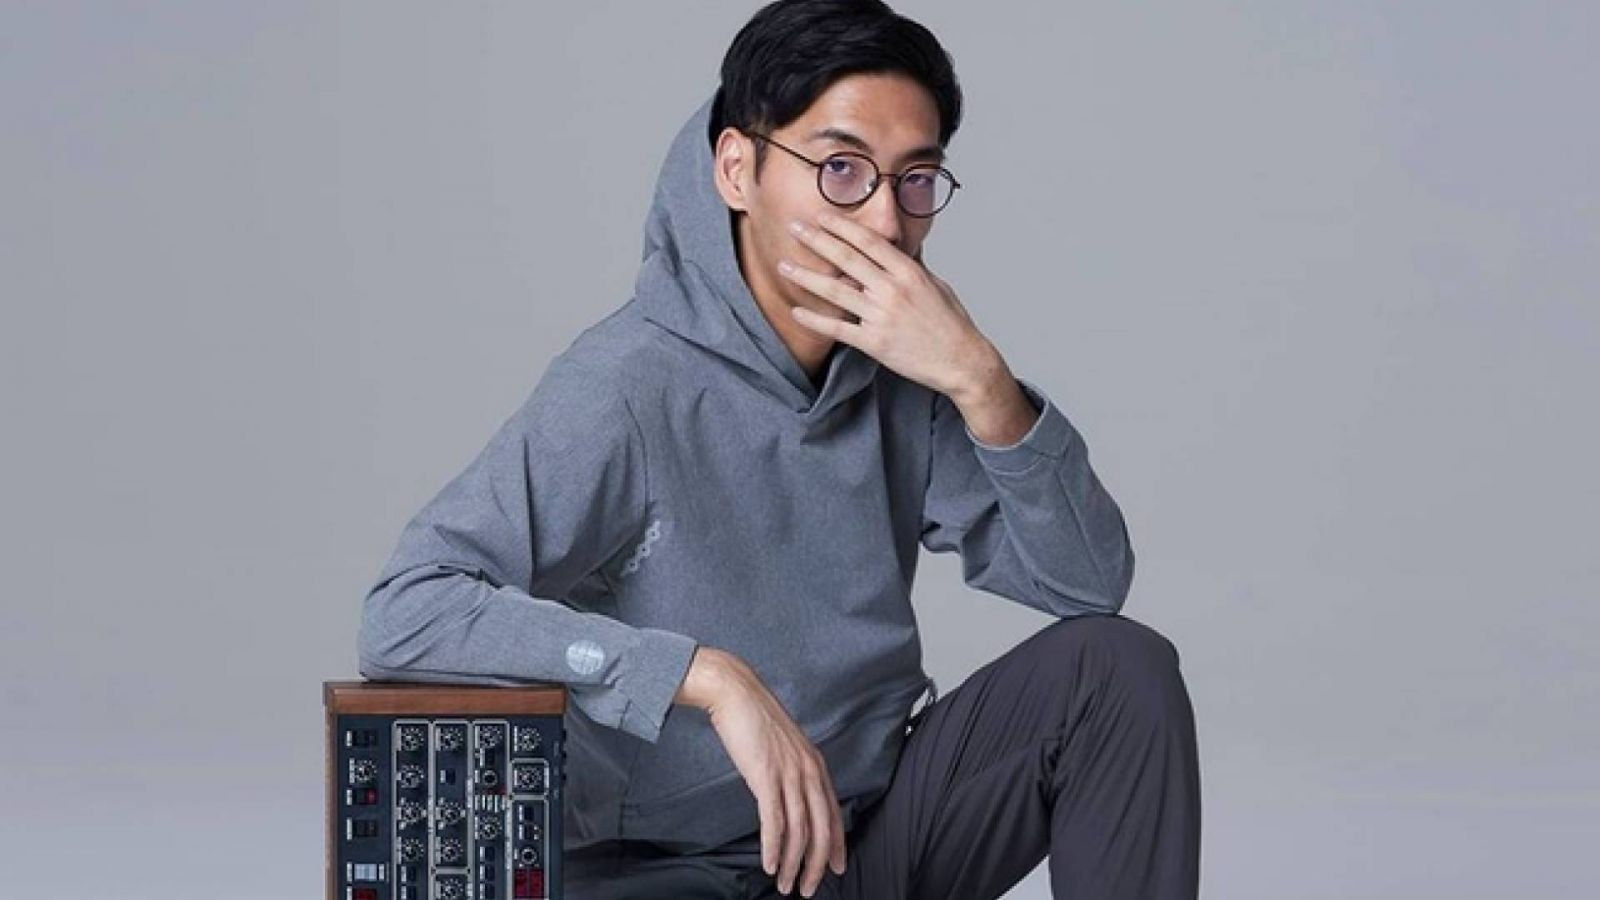 tofubeats © tofubeats. All Rights Reserved.